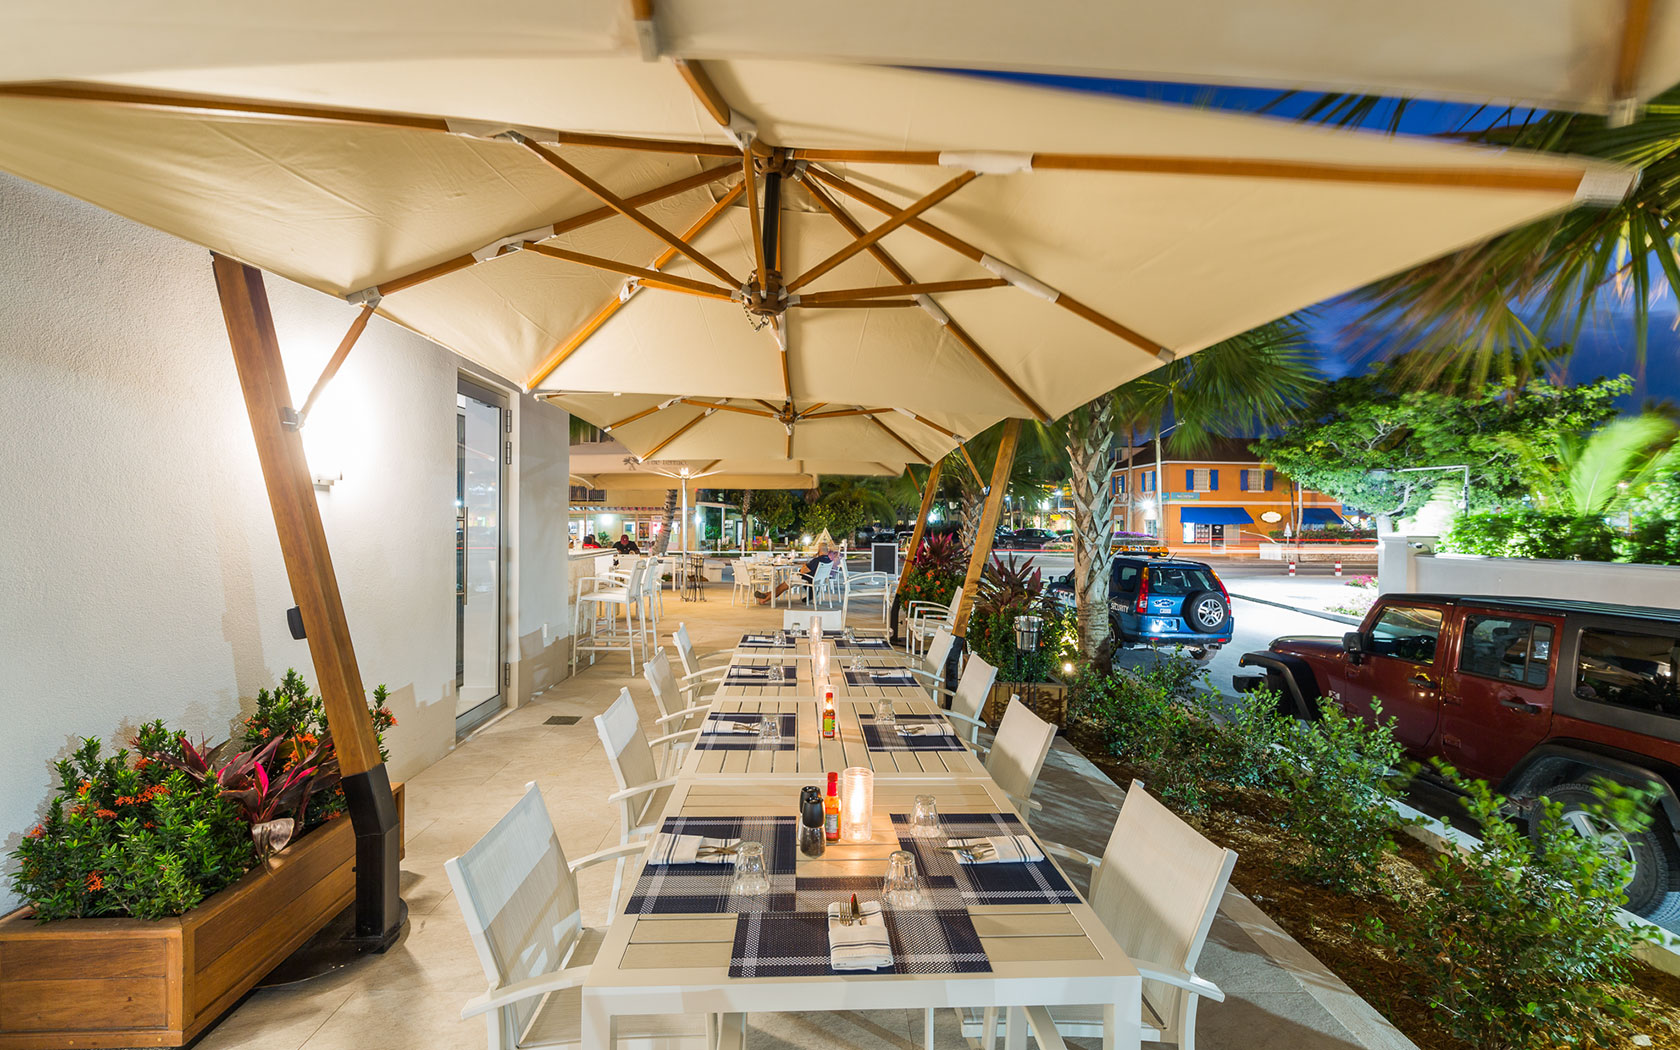 covered outdoor seating area at night